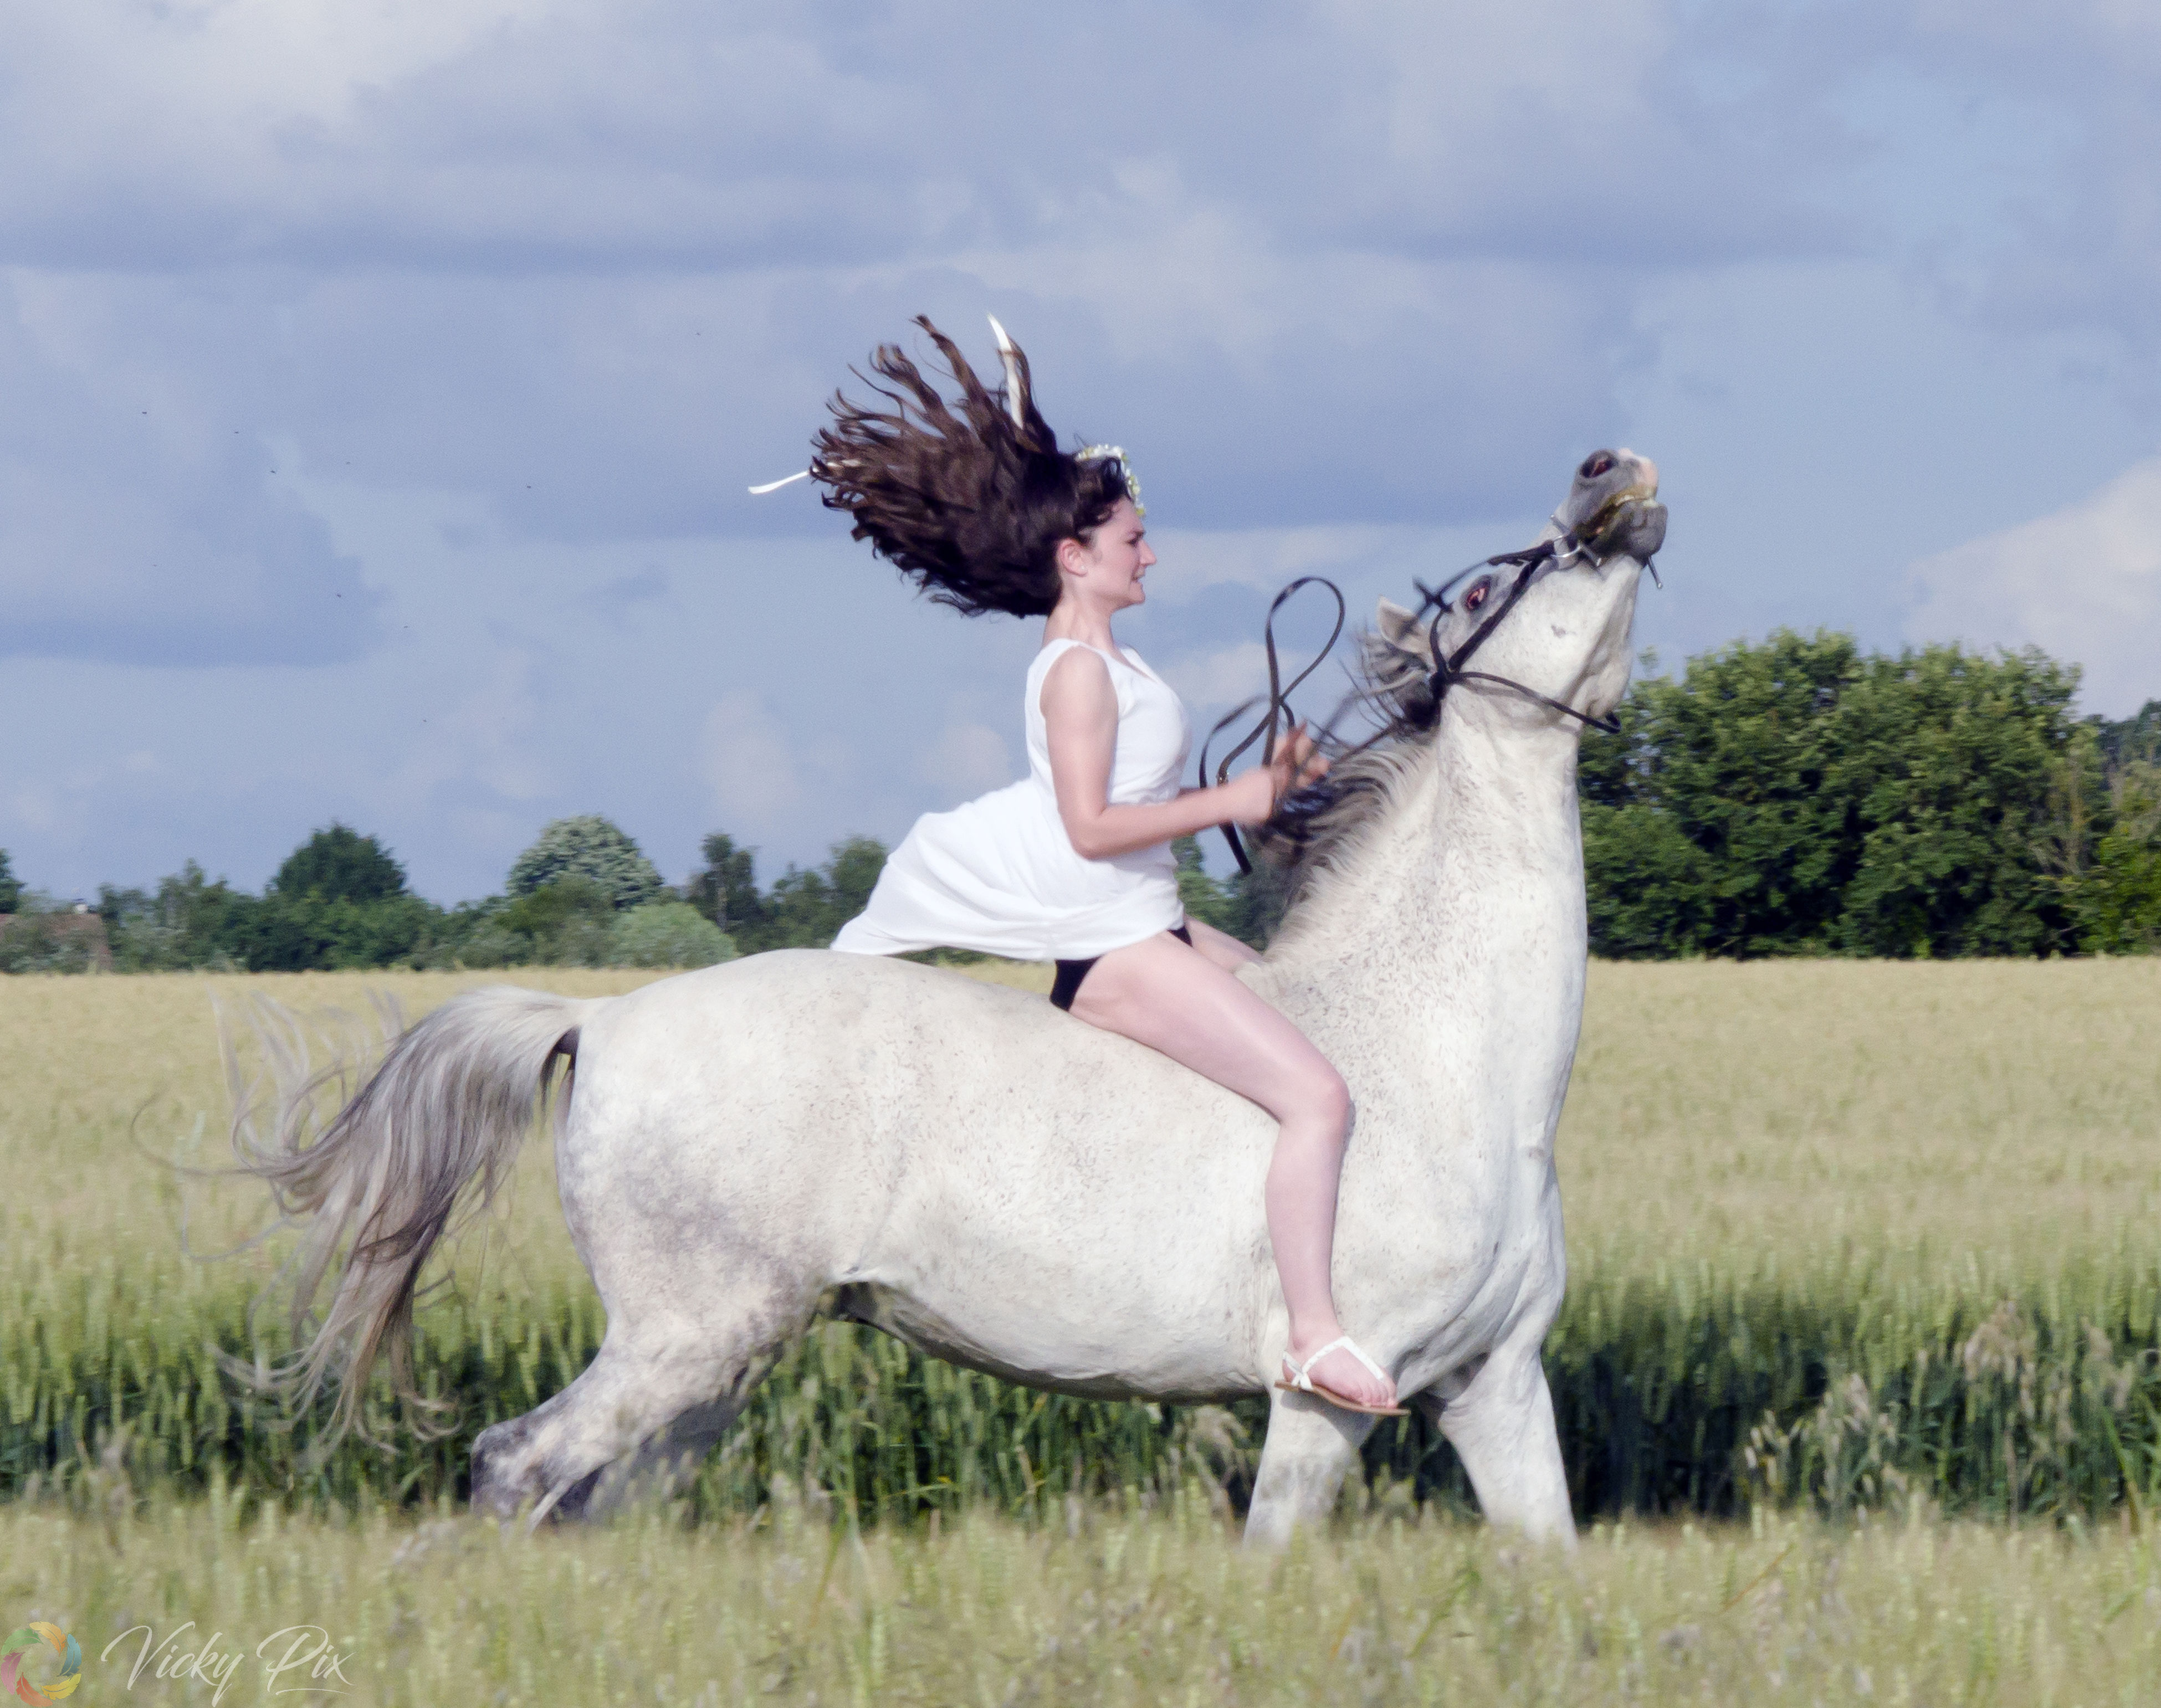 horse, one animal, animal themes, one person, mammal, field, domestic animals, horseback riding, leisure activity, riding, outdoors, day, grass, real people, livestock, cloud - sky, sky, side view, full length, tree, happiness, sitting, nature, lifestyles, young adult, beautiful woman, young women, people